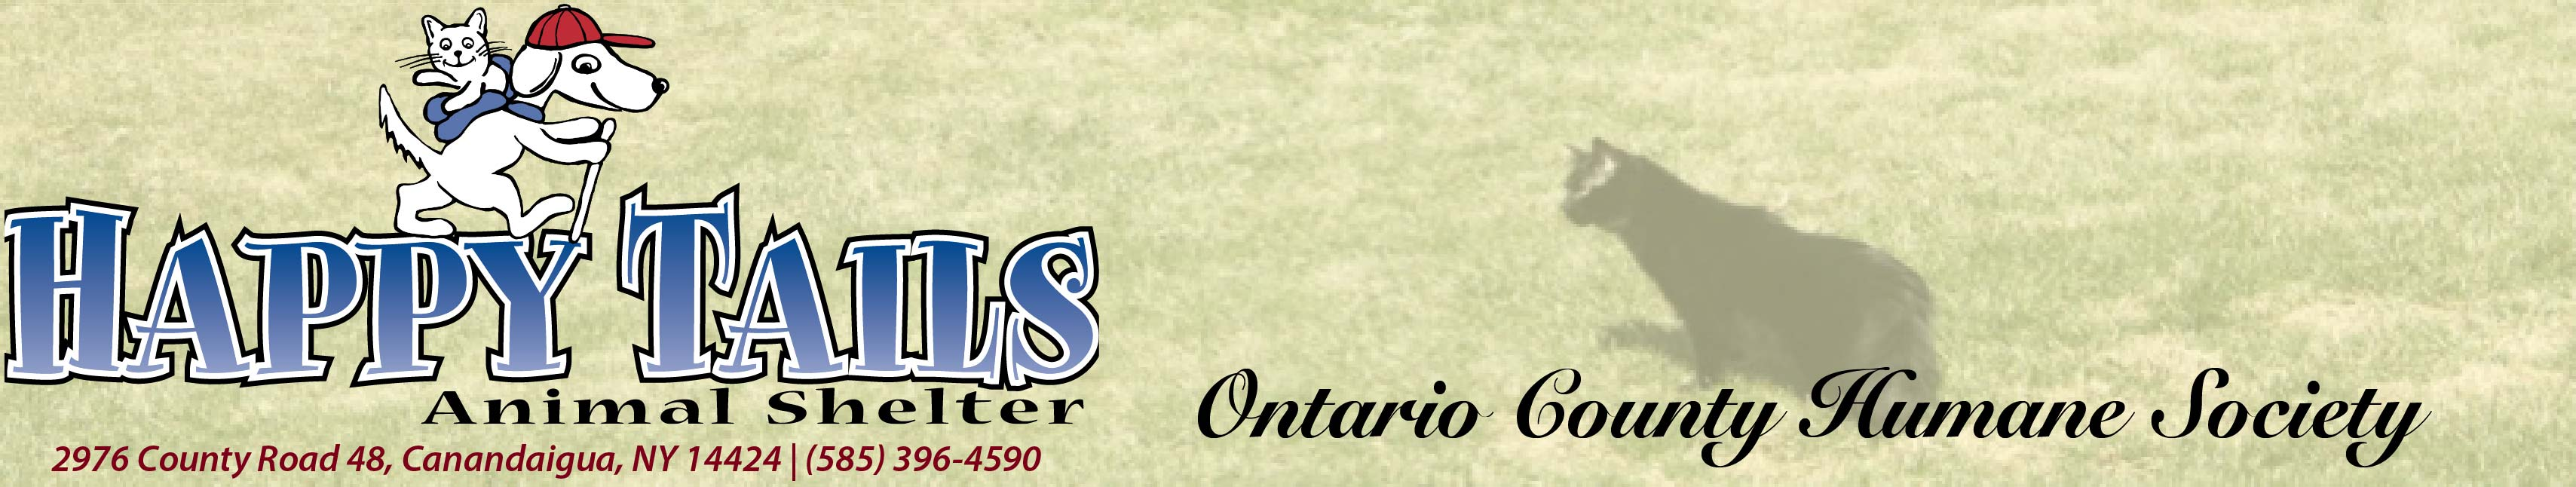 The Ontario County Humane Society - Happy Tails Shelter